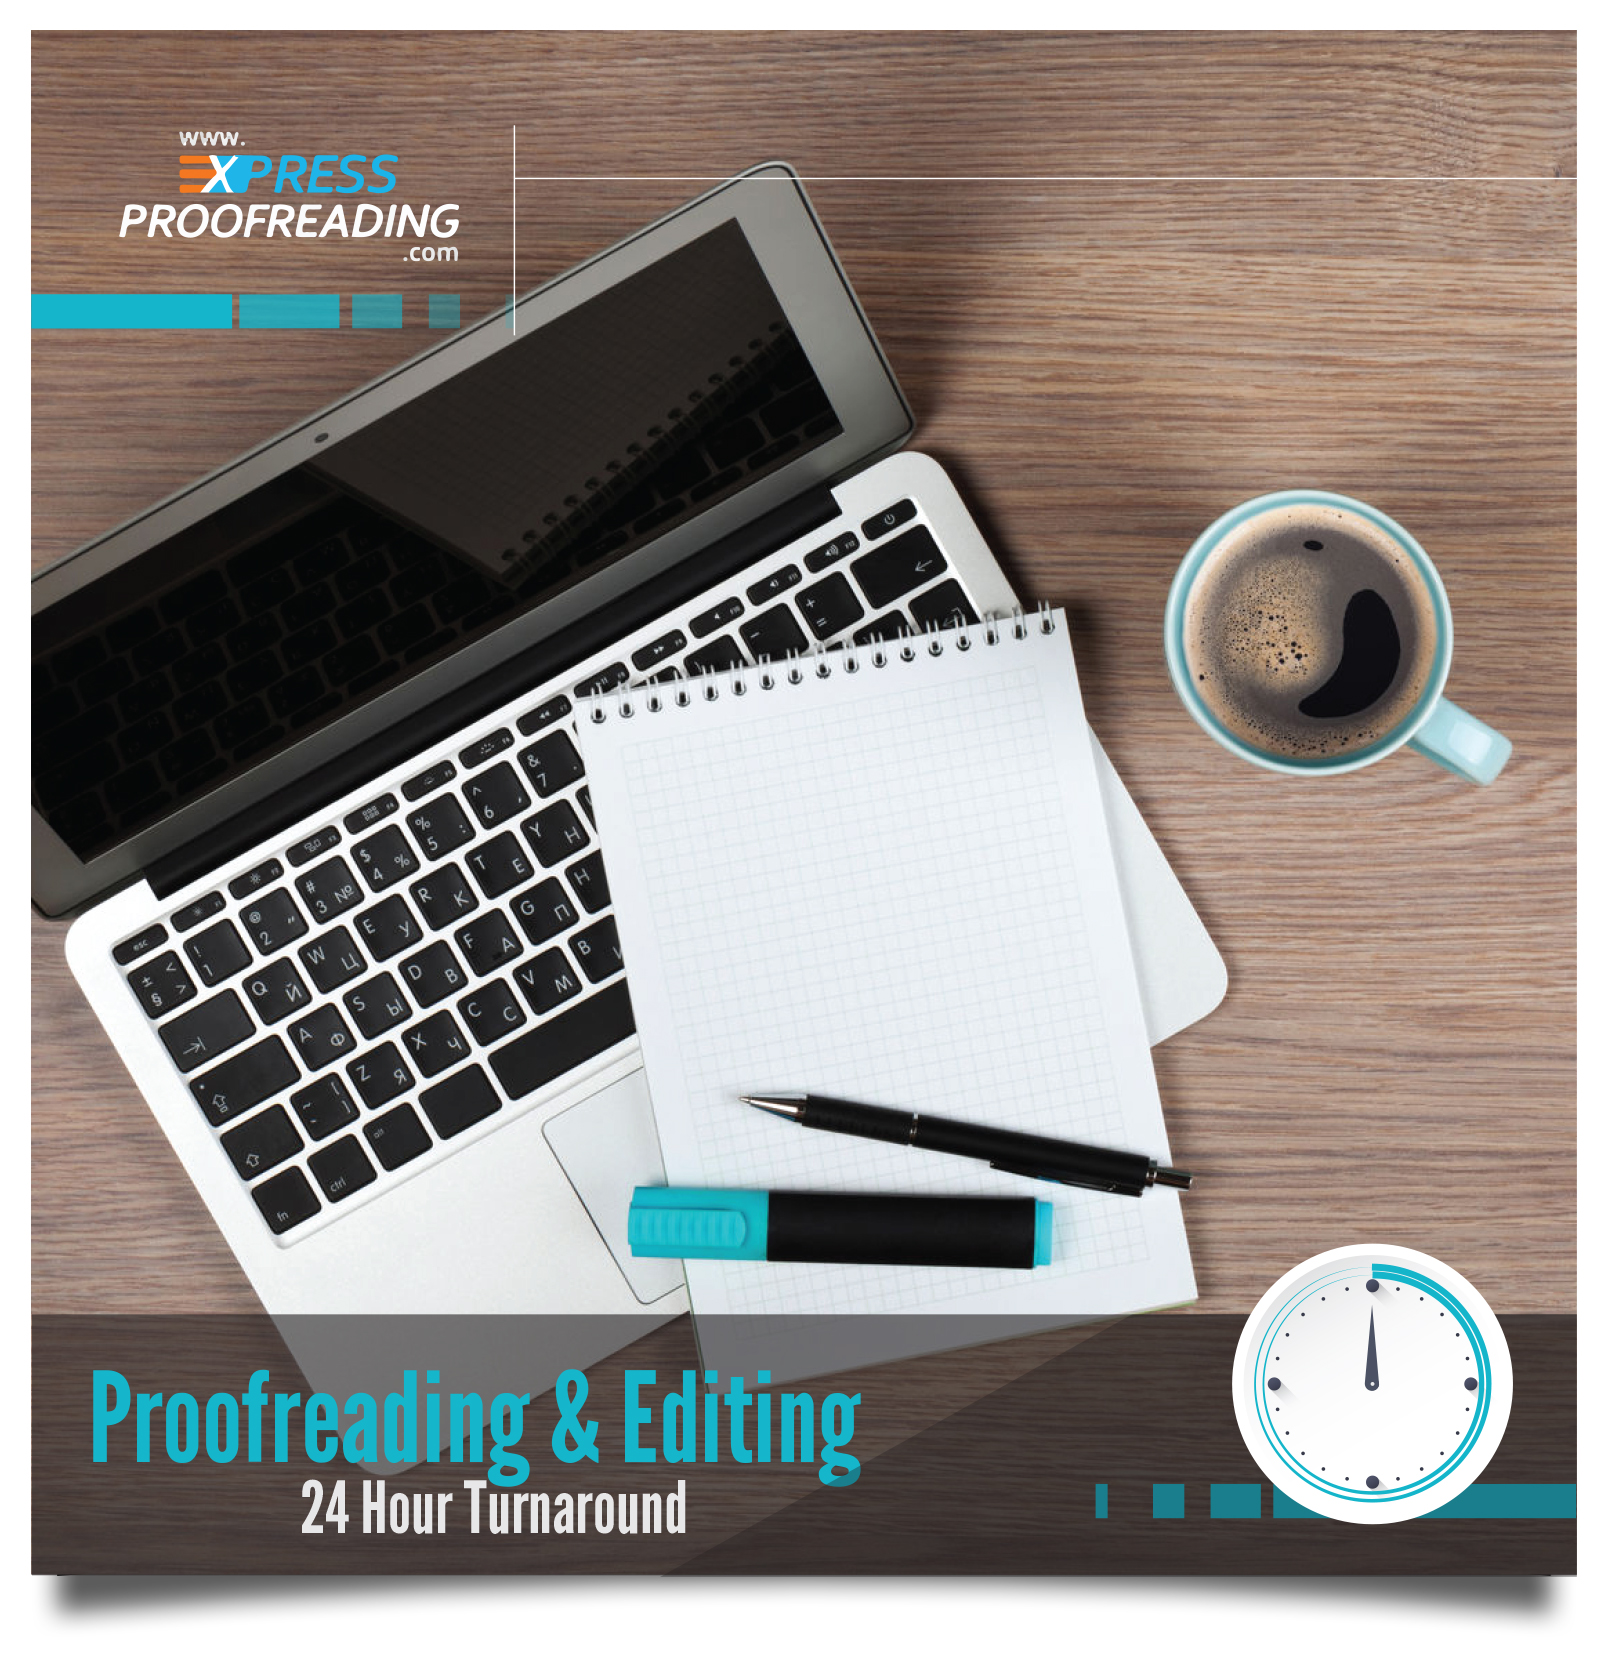 English In Italian: Proofreading & Editing 24 Hour Turnaround